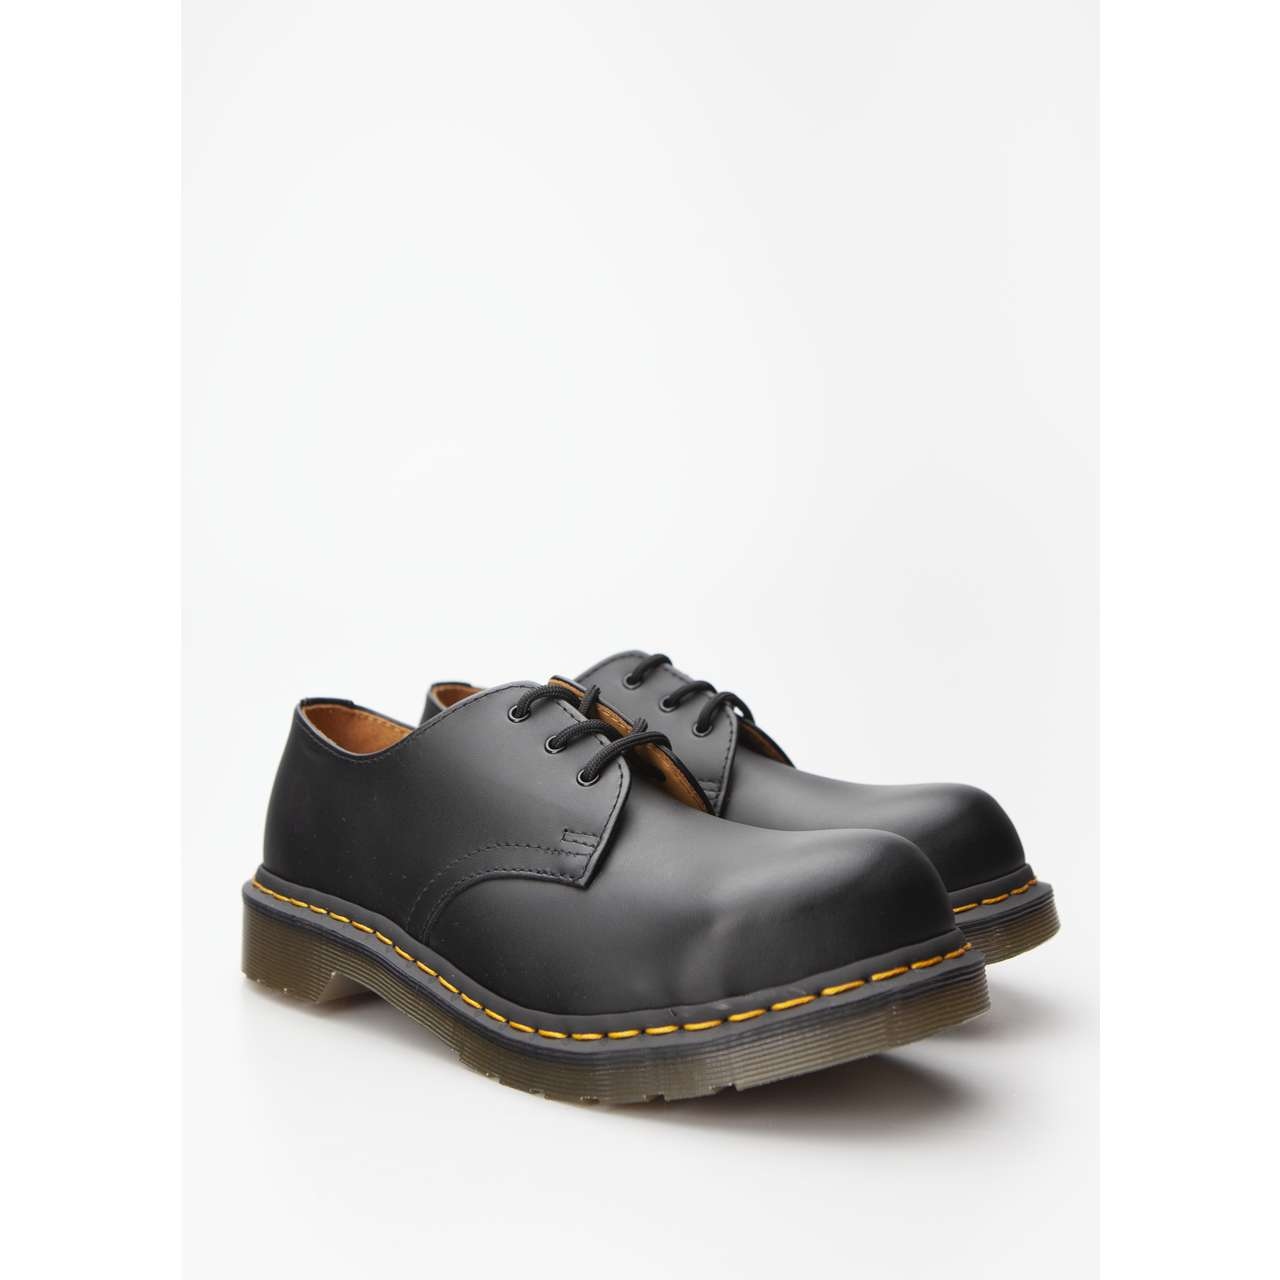 Buty Dr. Martens  <br/><small>1925 black DM10111001 </small>